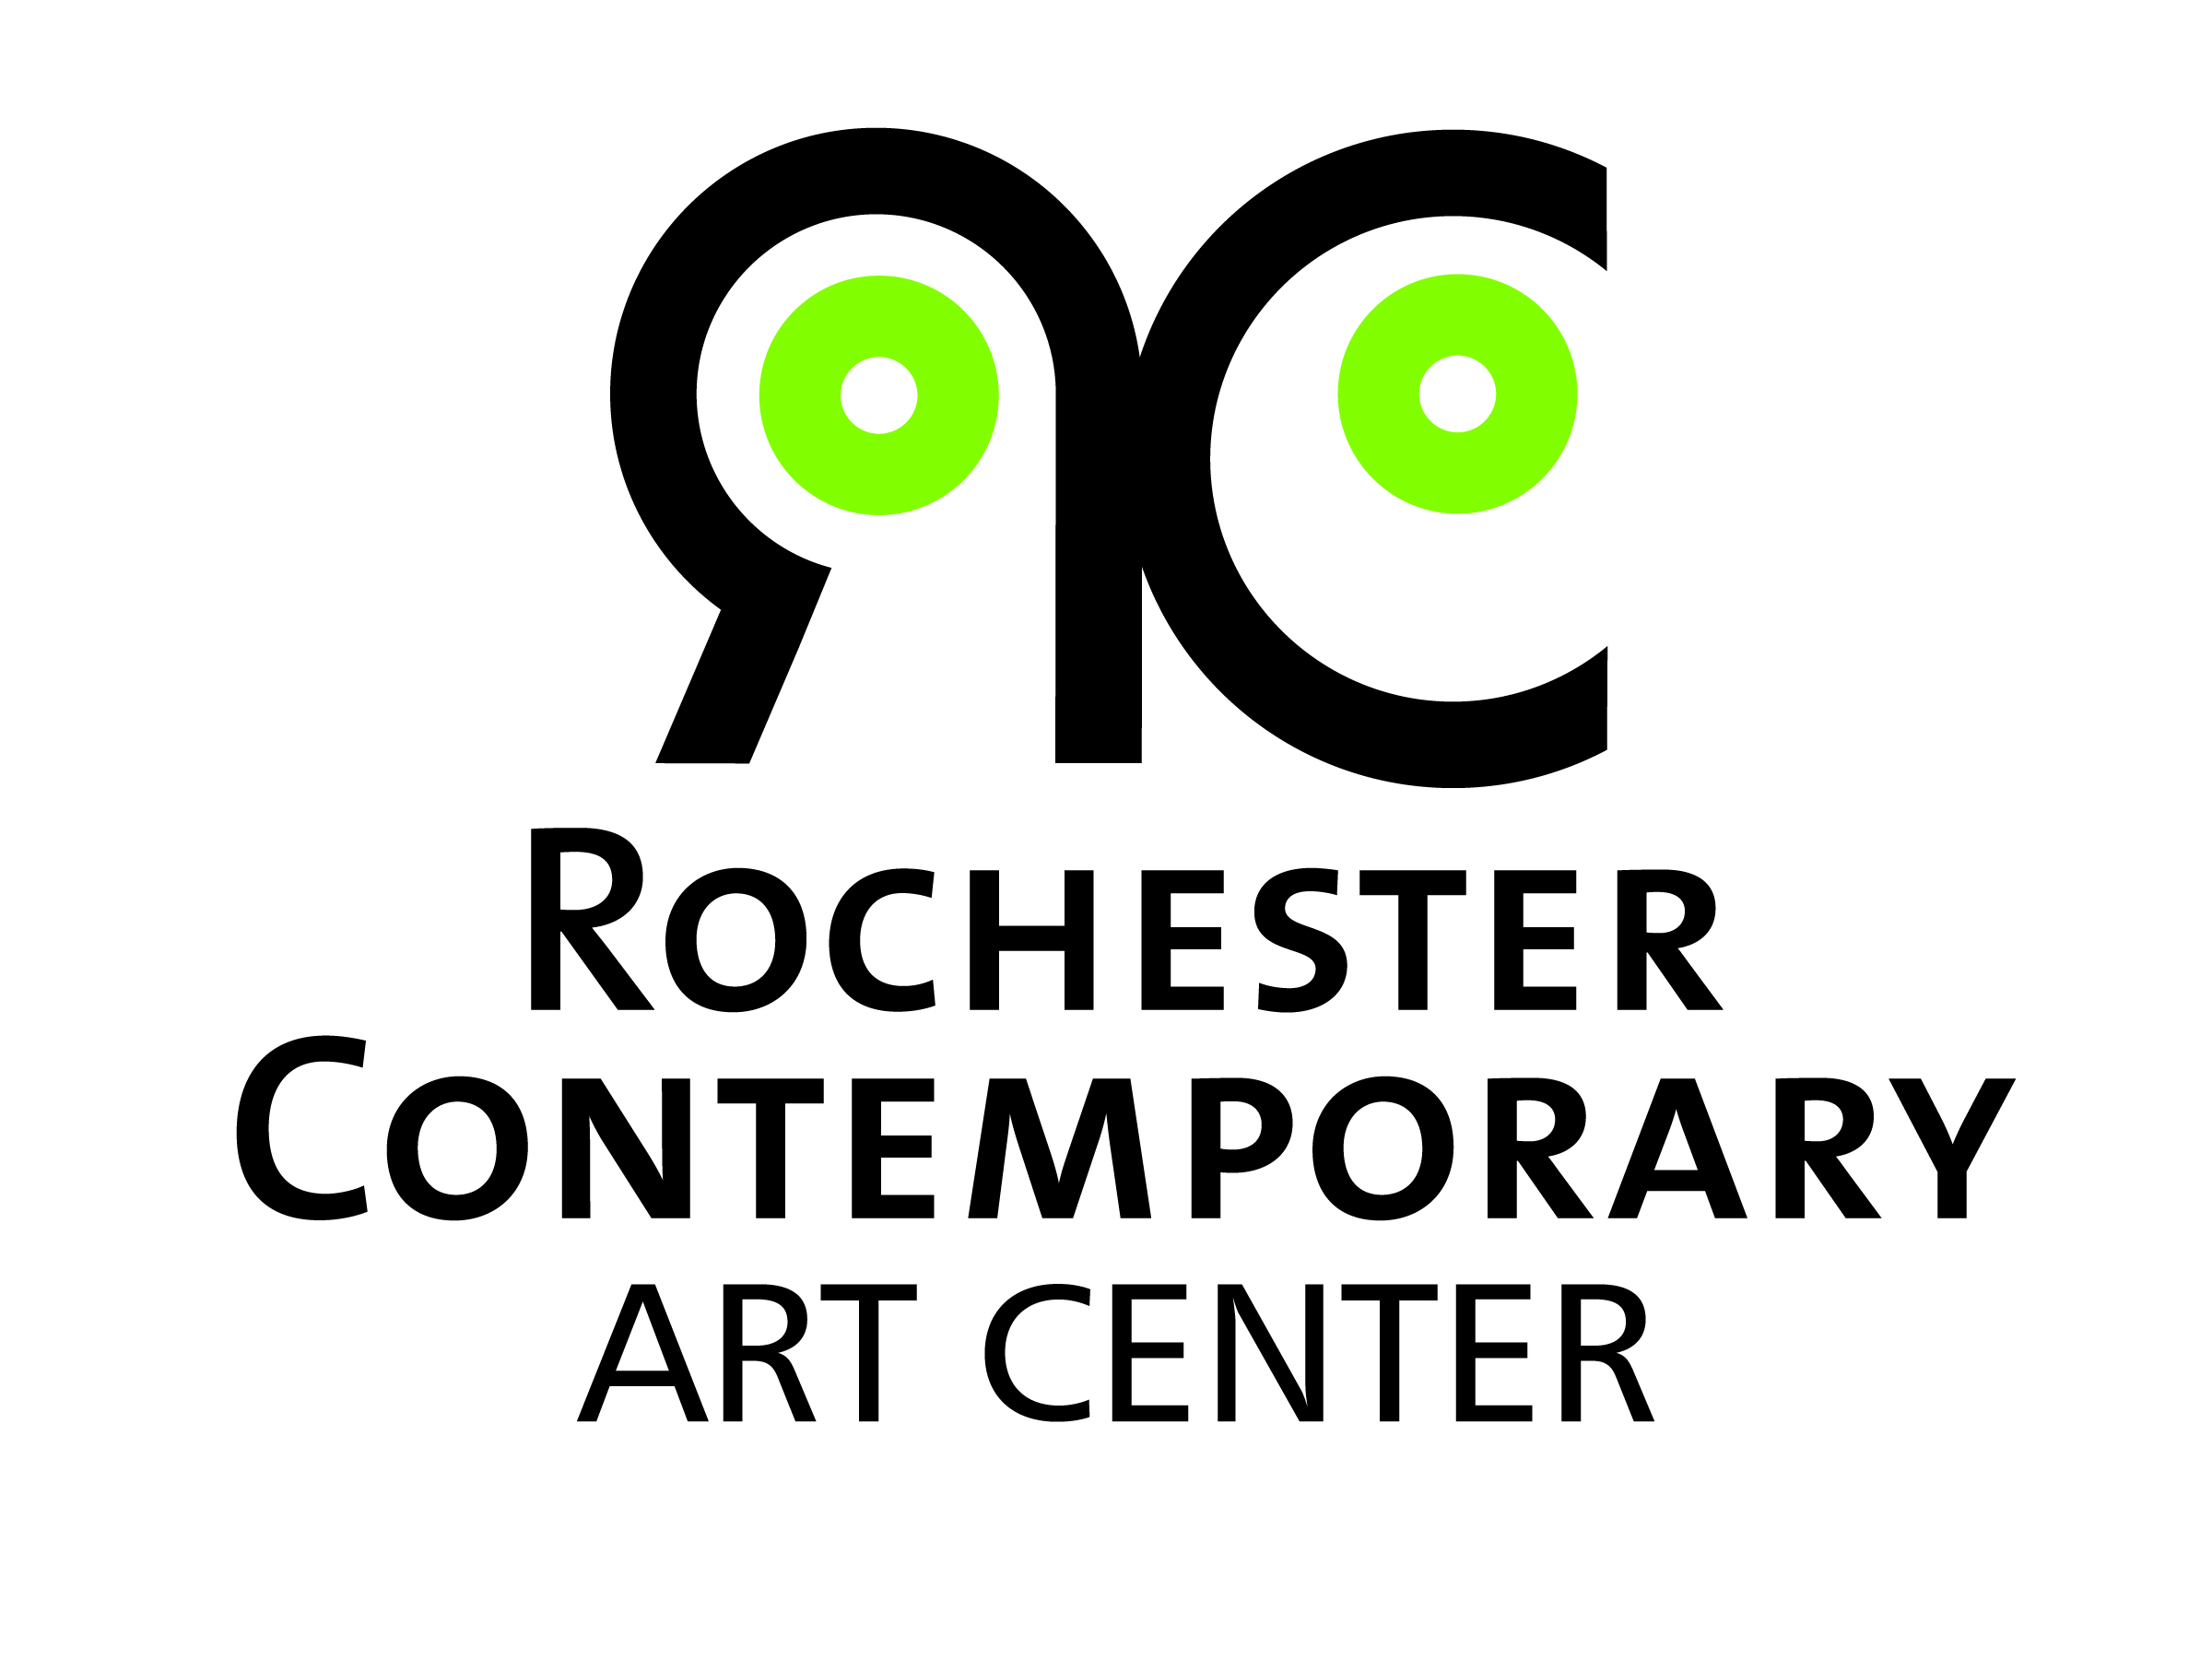 Rochester Contemporary Art Center (RoCo)